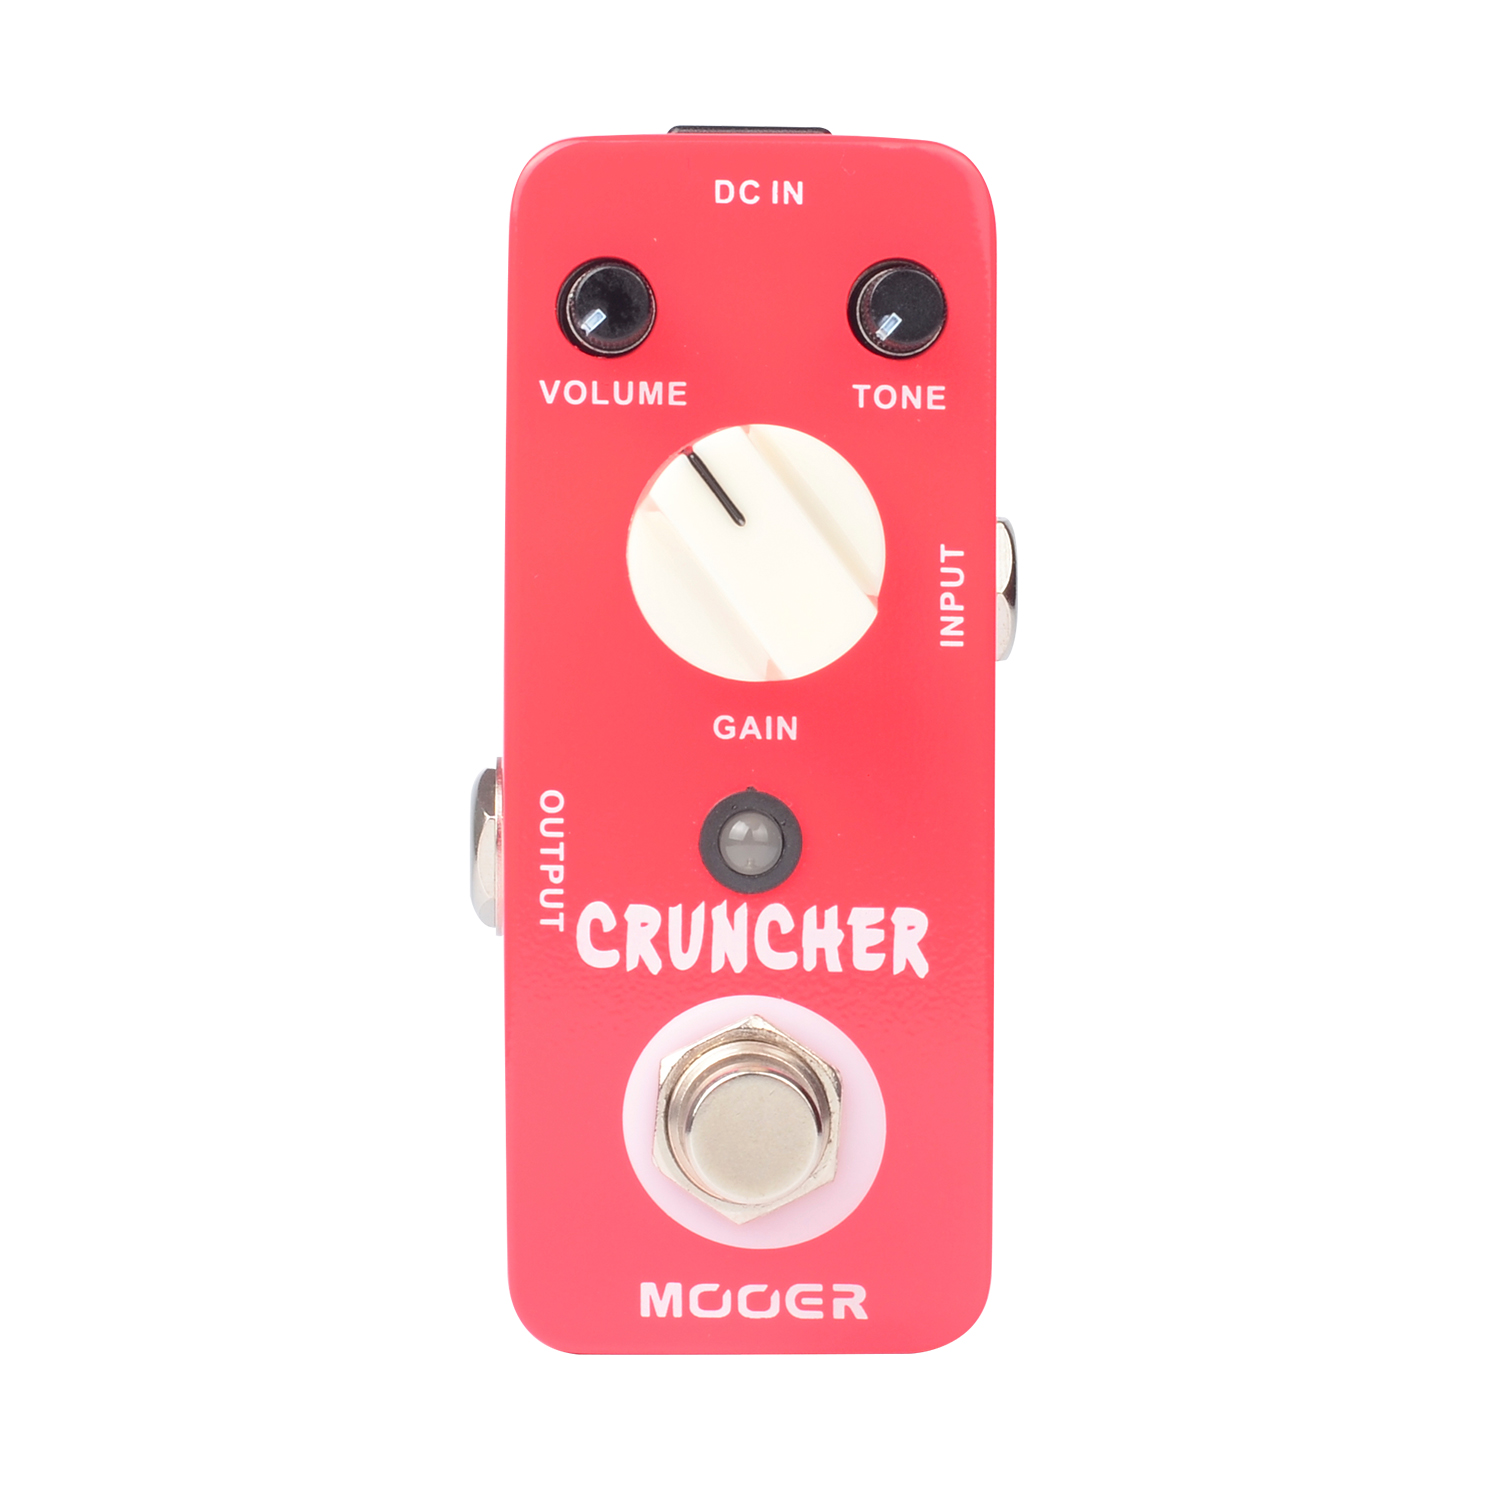 Mooer Cruncher High Gain Distortion Guitar Parts and Accessories Micro True Bypass Electric Guitar Bass Effects Pedal